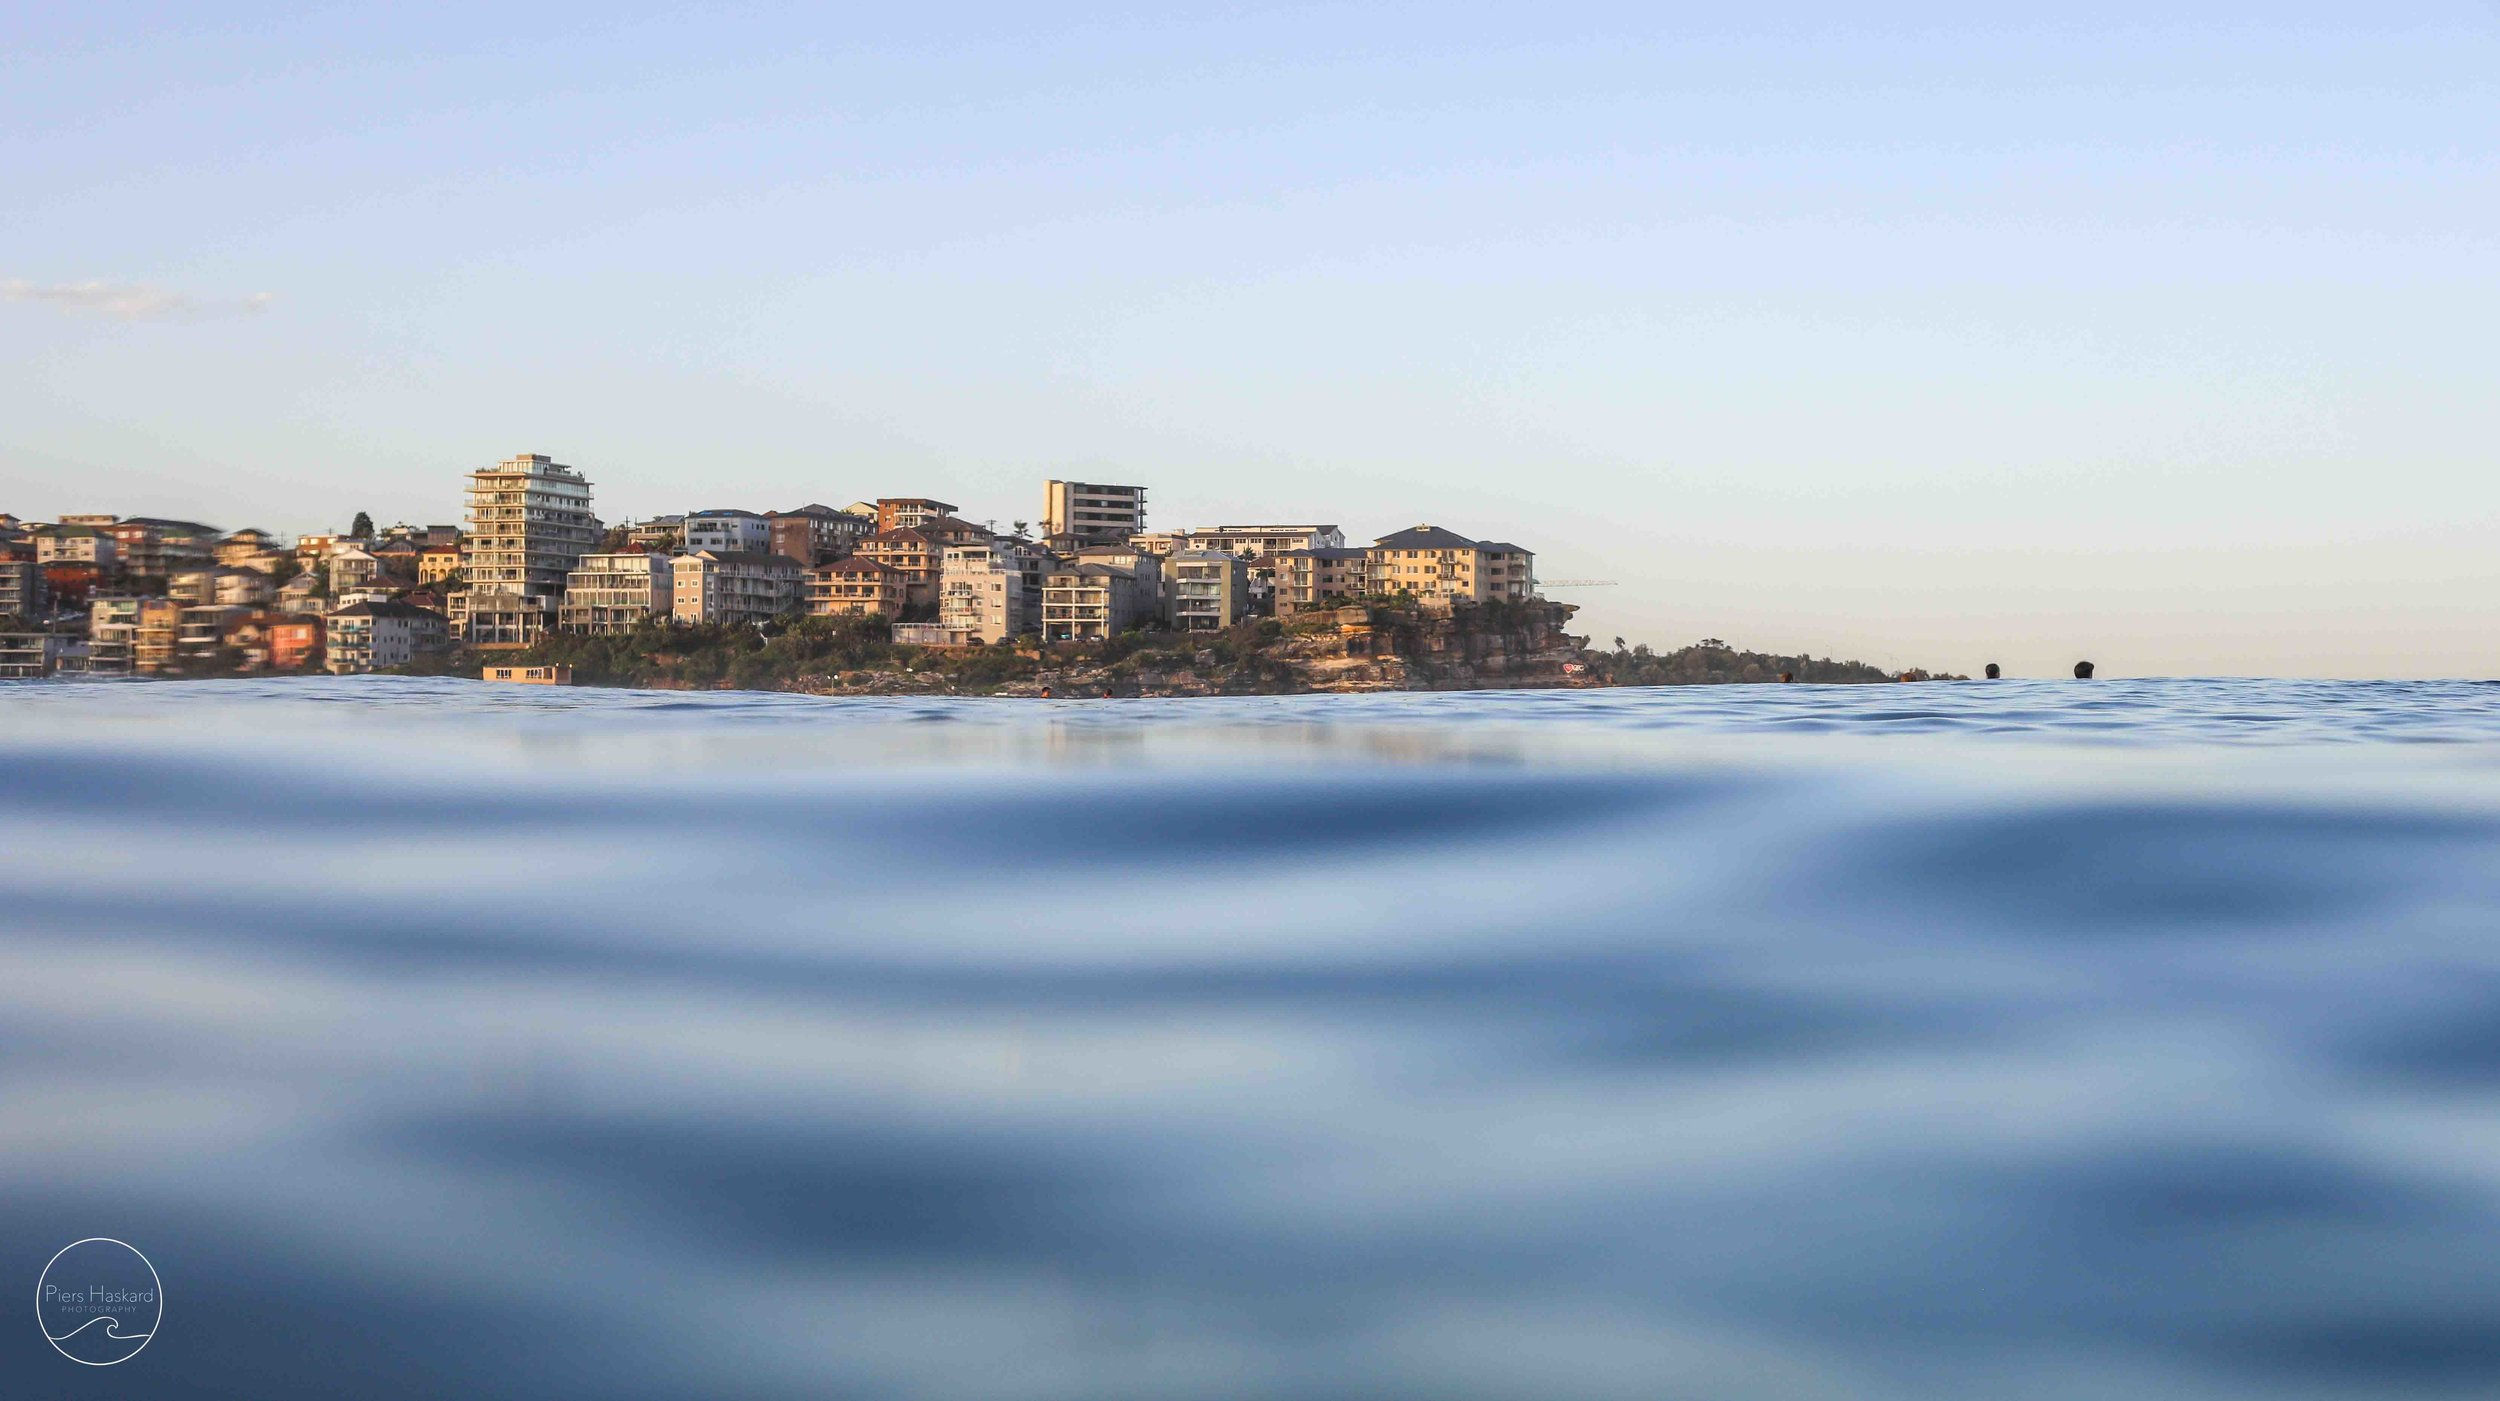 12.2.2019 // Queenscliff. I had just got home from work on golden hour. I saw the surf at Manly and I was straight down into the water with the camera. The offshore had picked up just the right amount and the banks at North Steyne were firing! There was an epic scene around Manly that arvo too with decent crowds on the beach cracking open a beer watching the waves as the light faded into dusk.  'Queenscliff' - Available in the 'Life On The Coast' category.   BUY